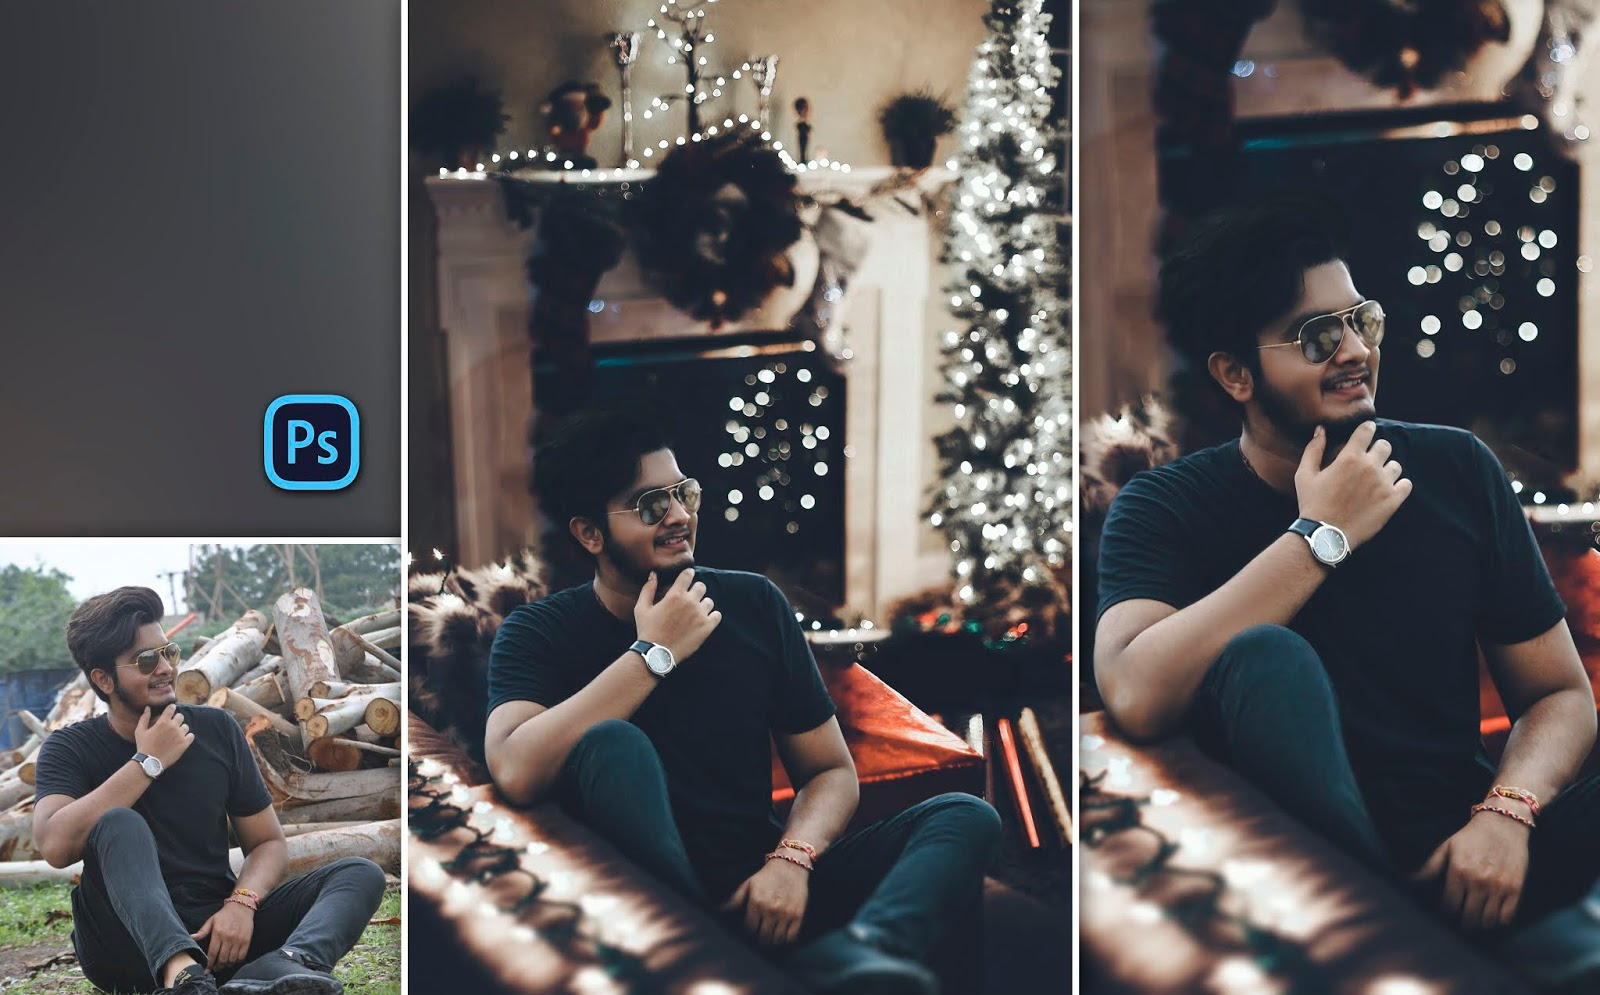 Christmas Special Photo Editing in Brandon Woelfel Bokeh Style in Room in Photoshop cc